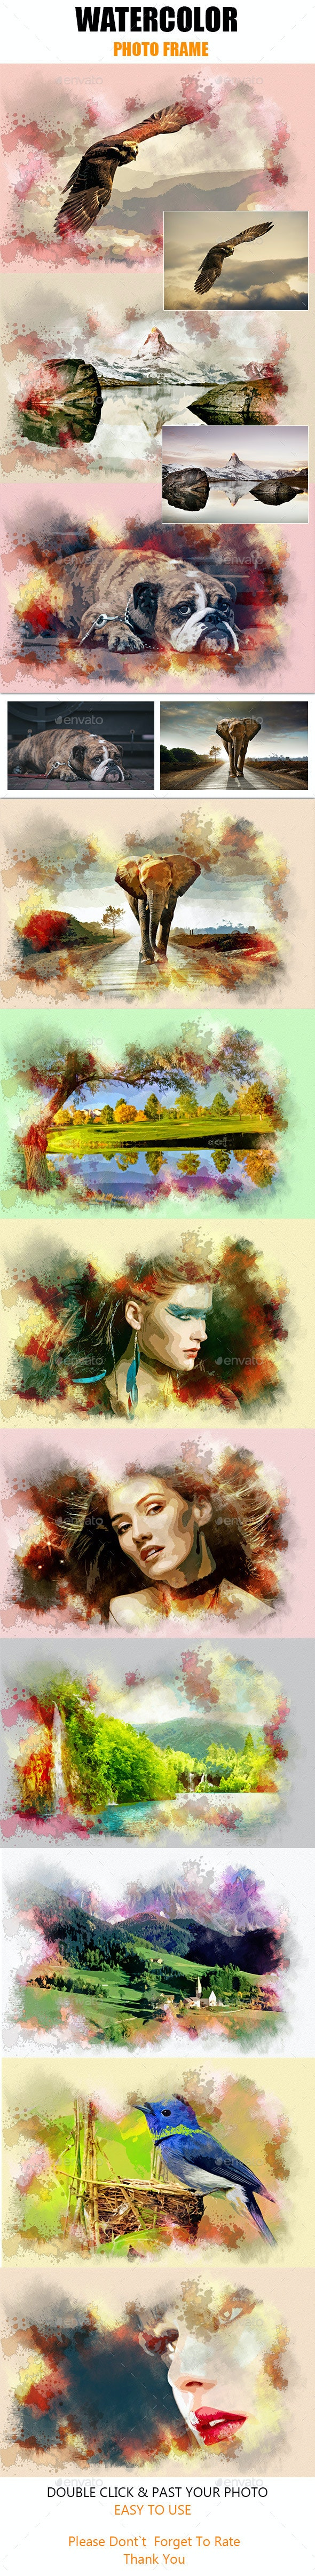 Watercolor Photo Frame - Photo Templates Graphics